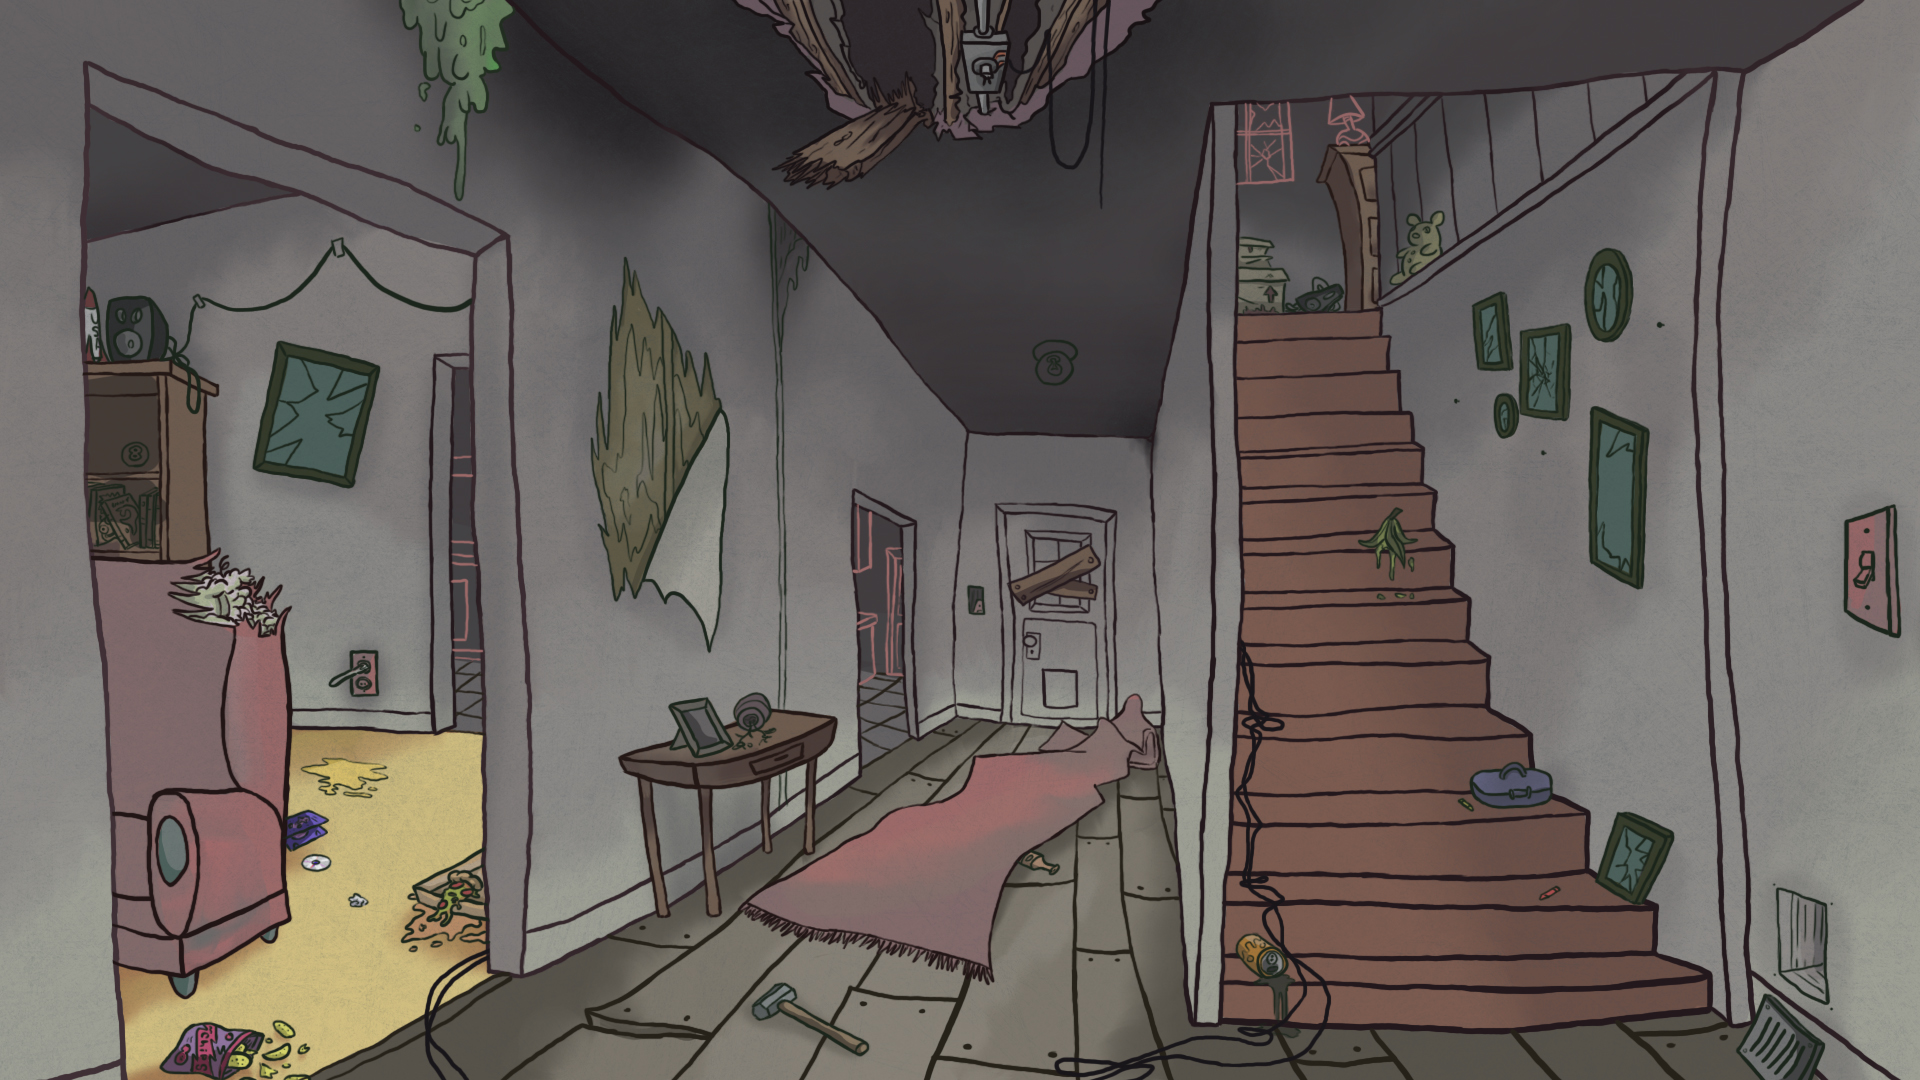 Haunted house Concept Art (animation background)